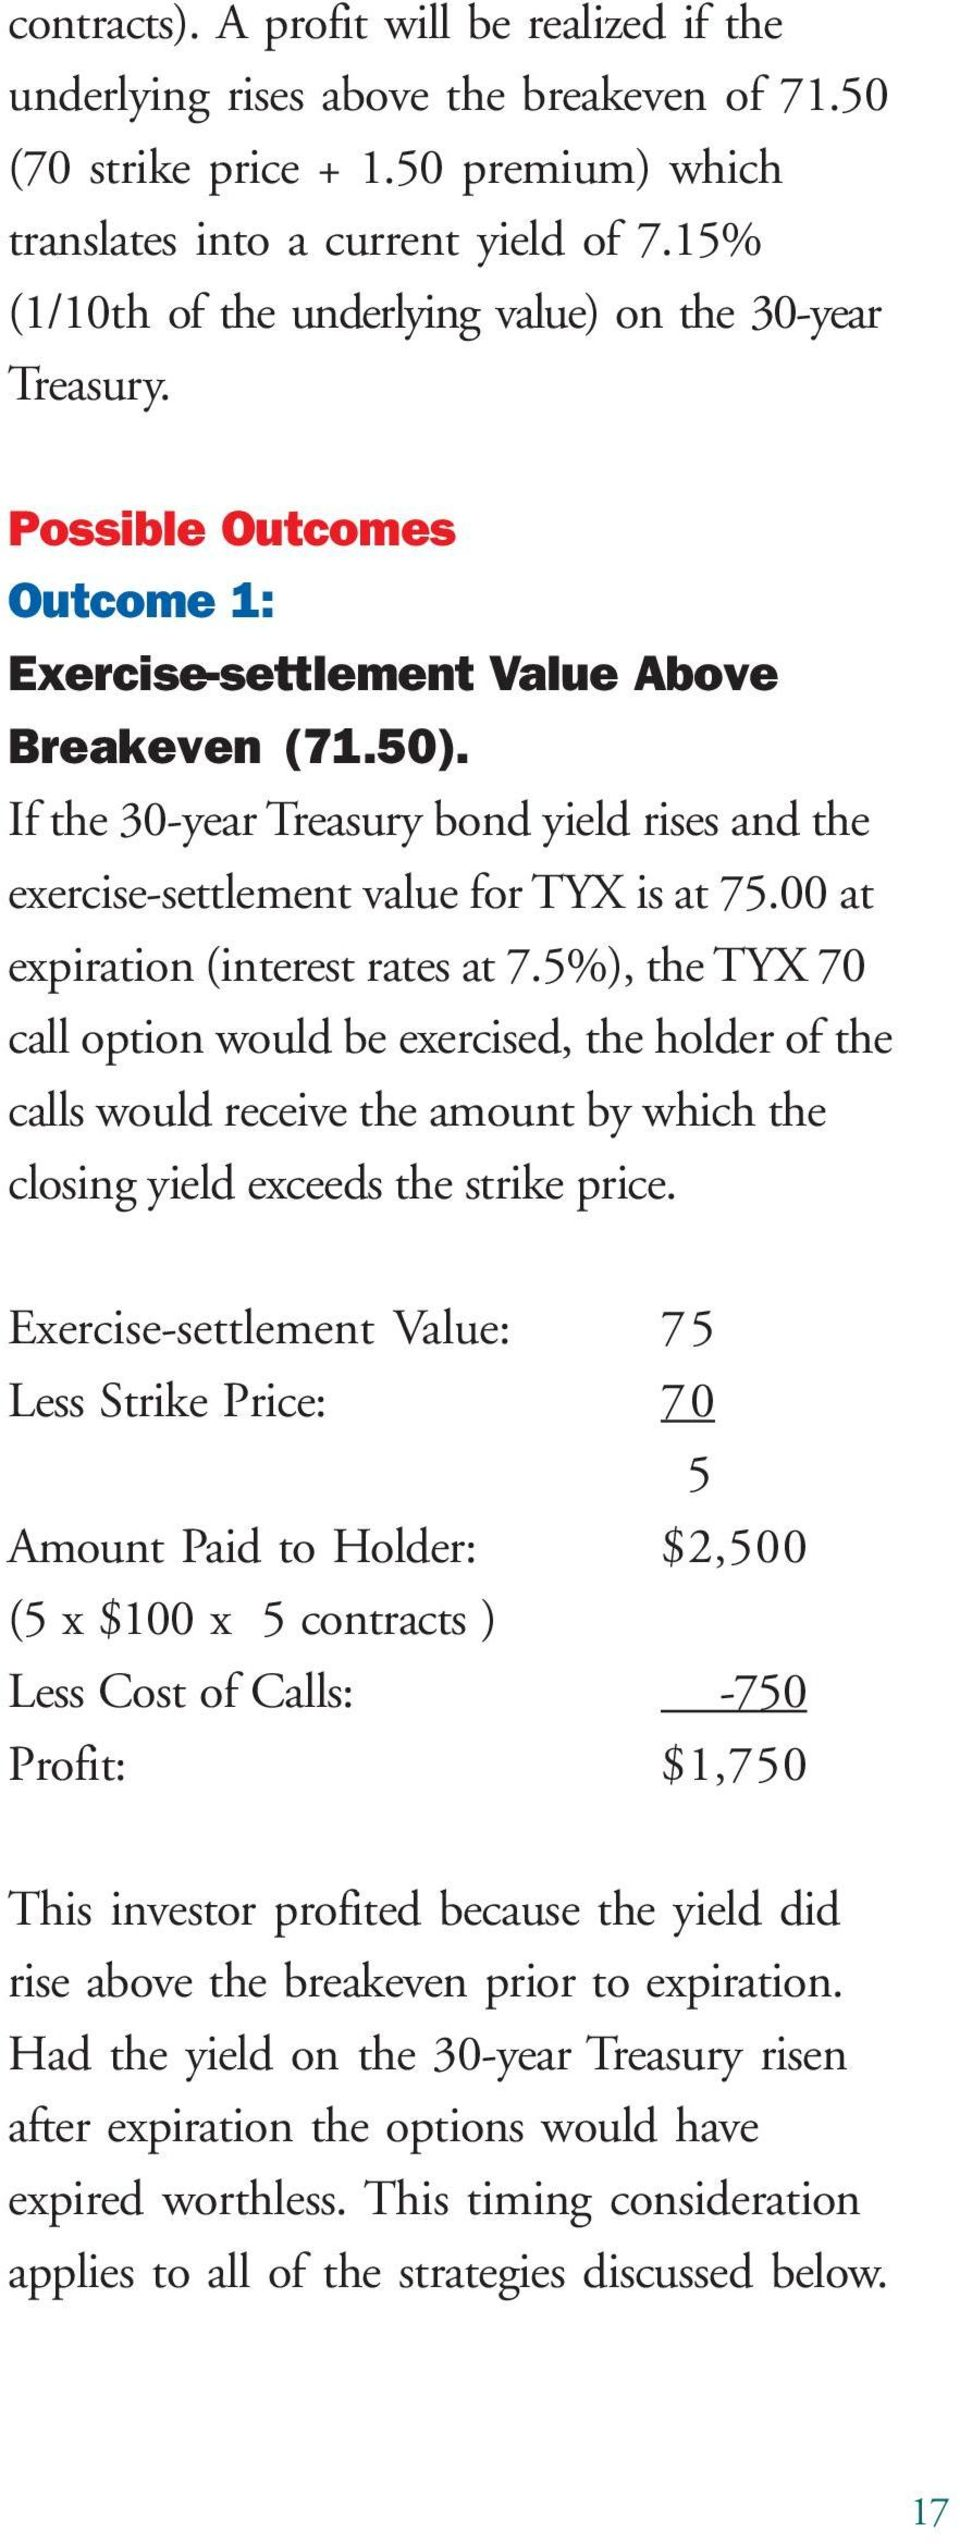 If the 30-year Treasury bond yield rises and the exercise-settlement value for TYX is at 75.00 at expiration (interest rates at 7.